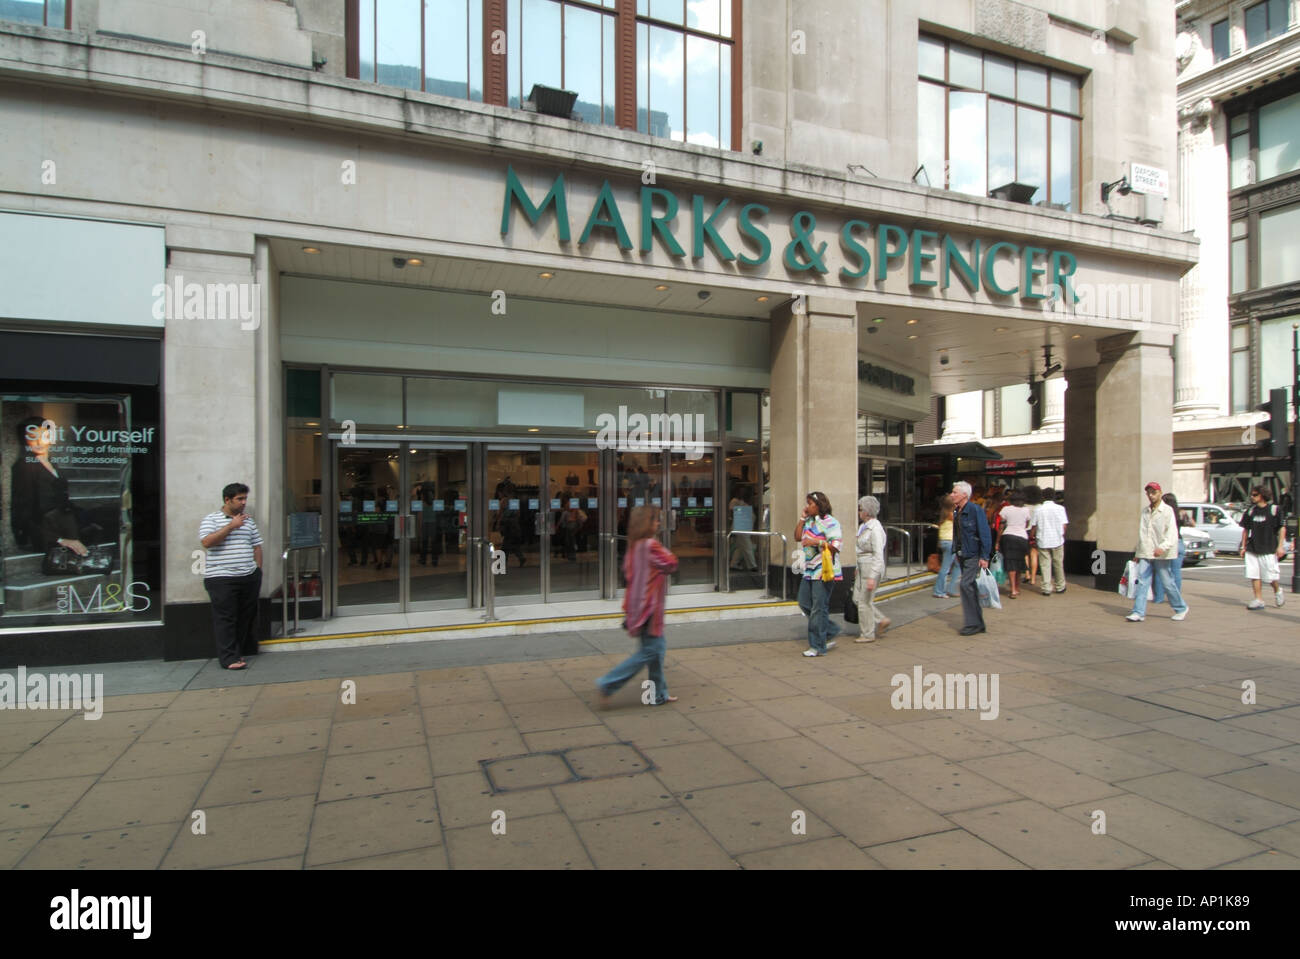 London oxford street ms mark spencer shop store stock photo london oxford street ms mark spencer shop store solutioingenieria Gallery